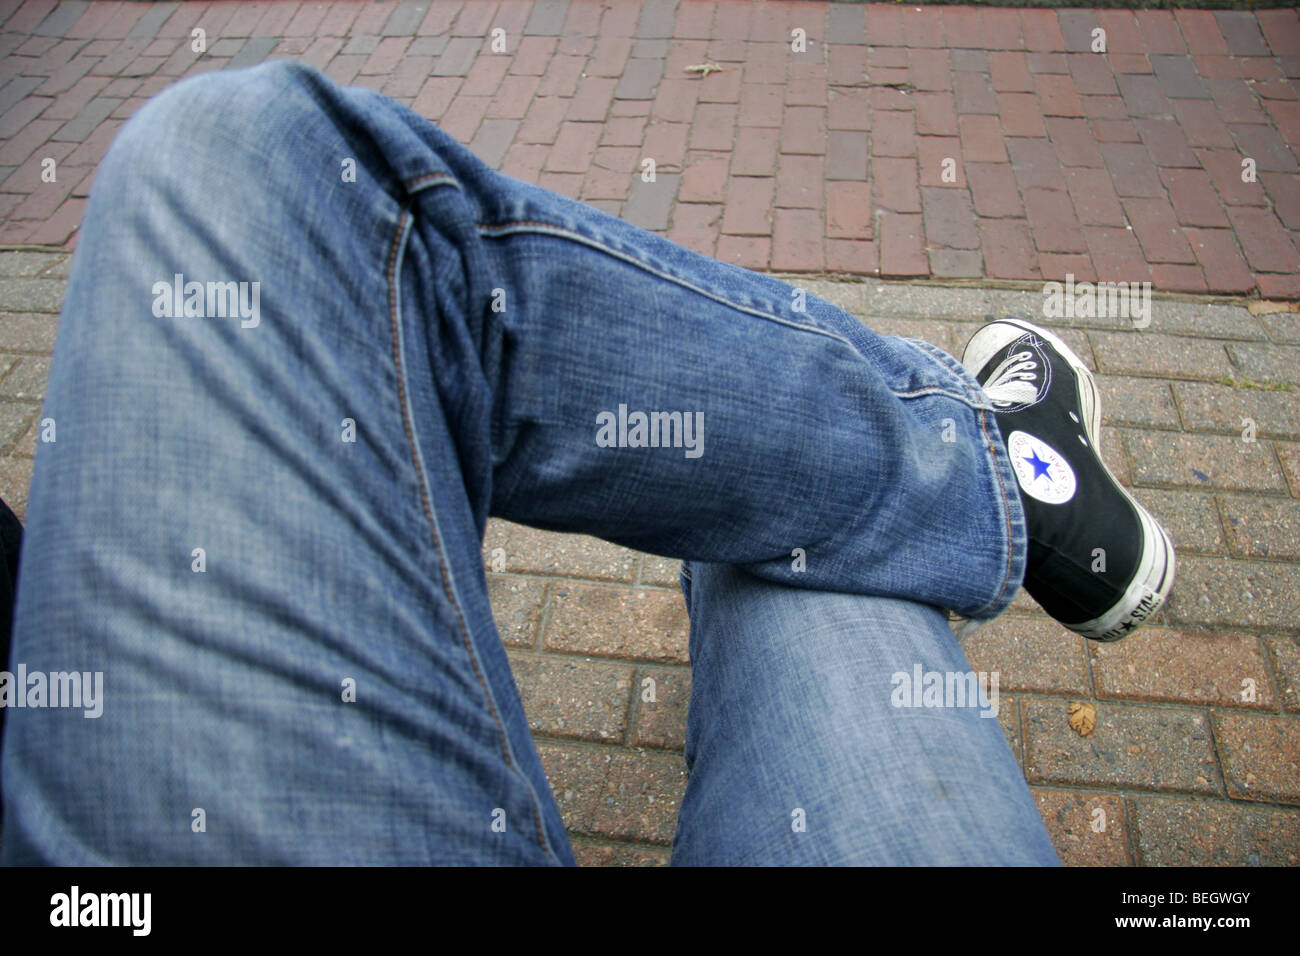 6f957e2eec2 Person wearing blue jeans and Converse shoes sitting cross legged outside.